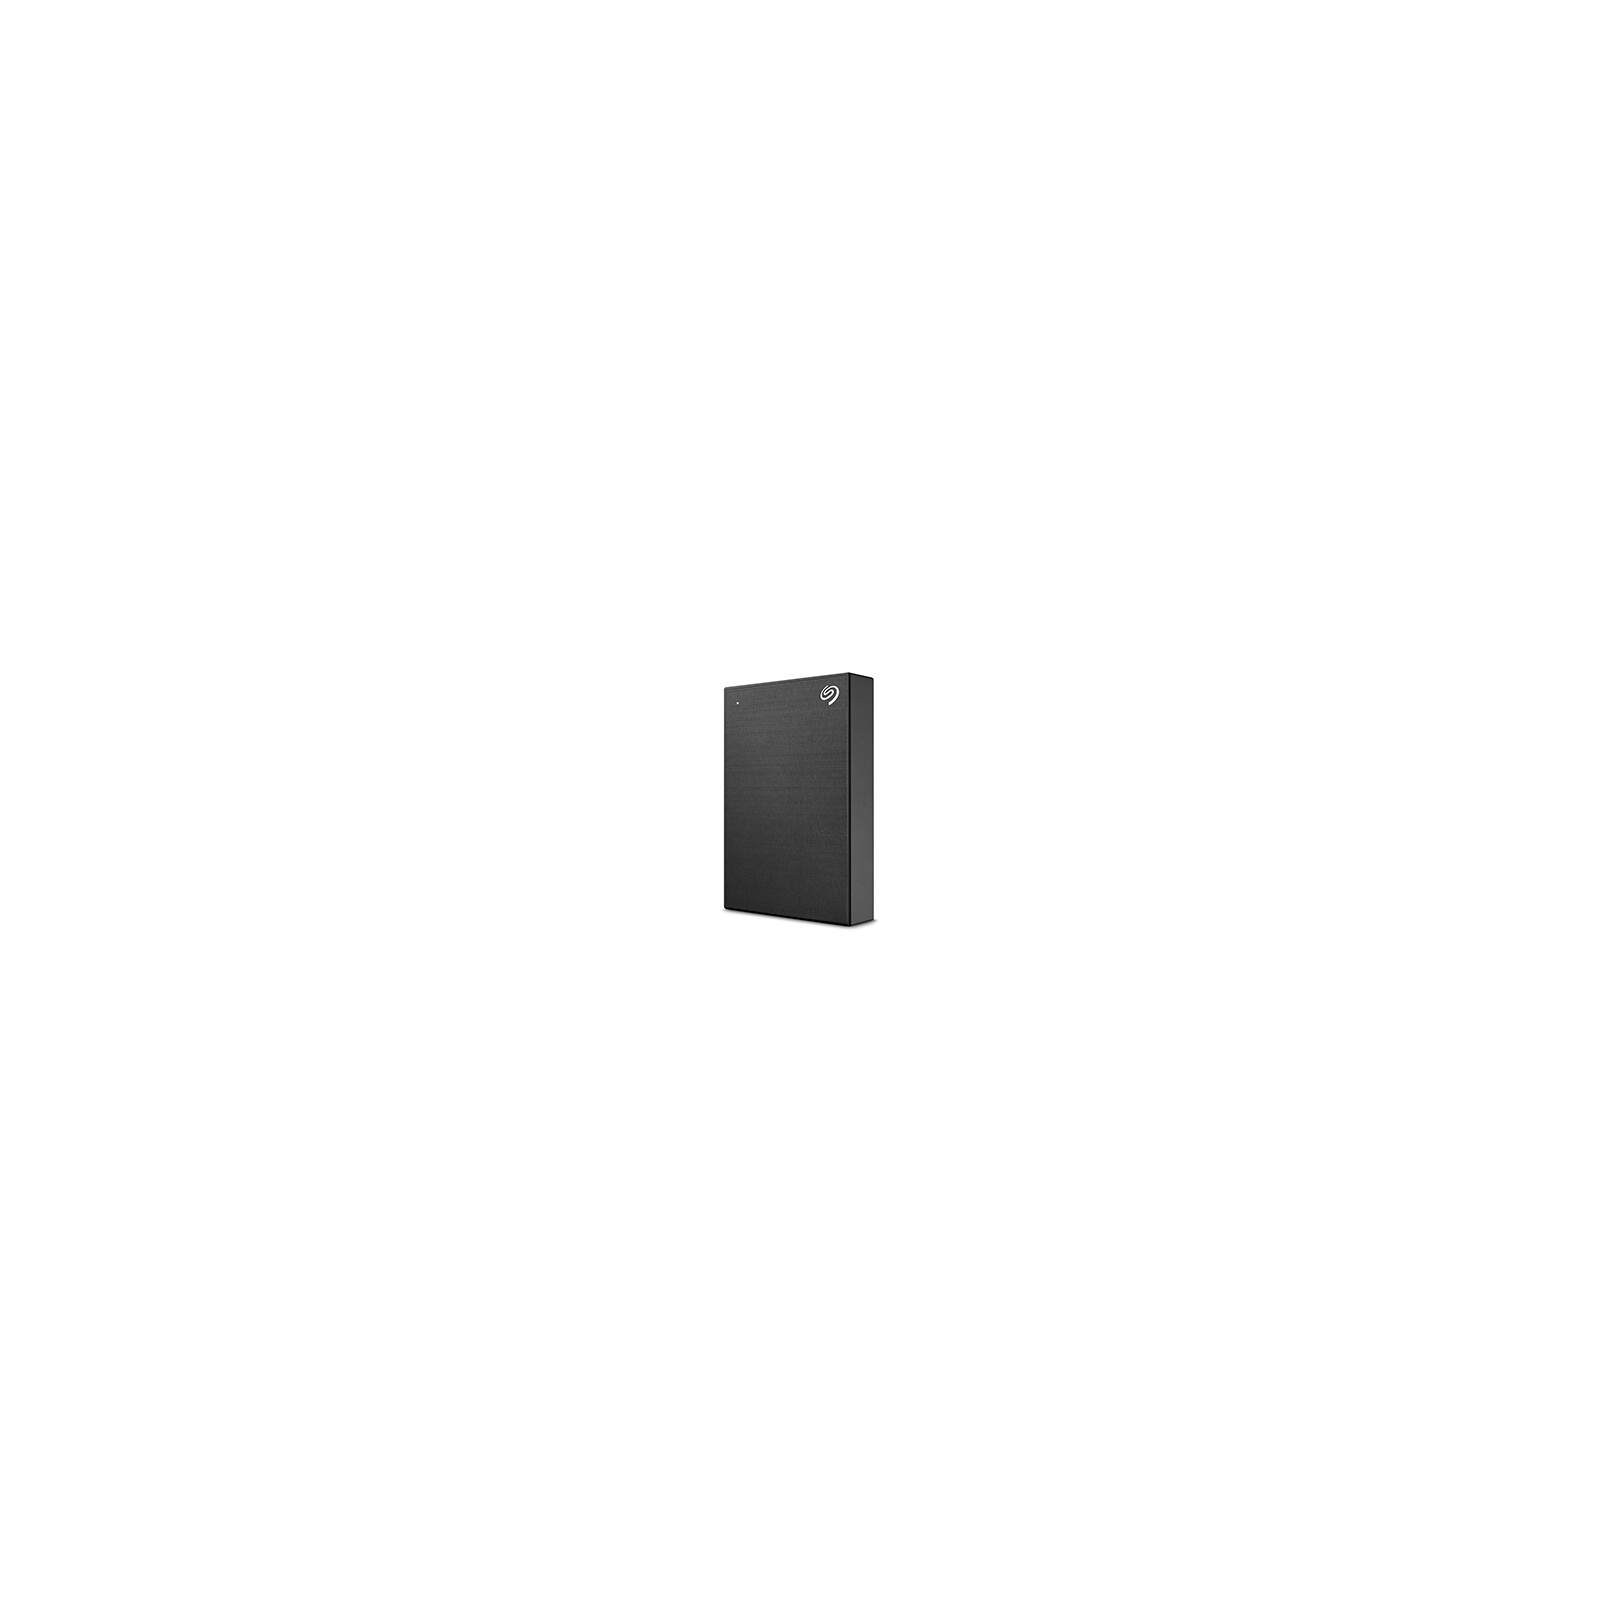 Seagate One Touch 4TB USB 3 black